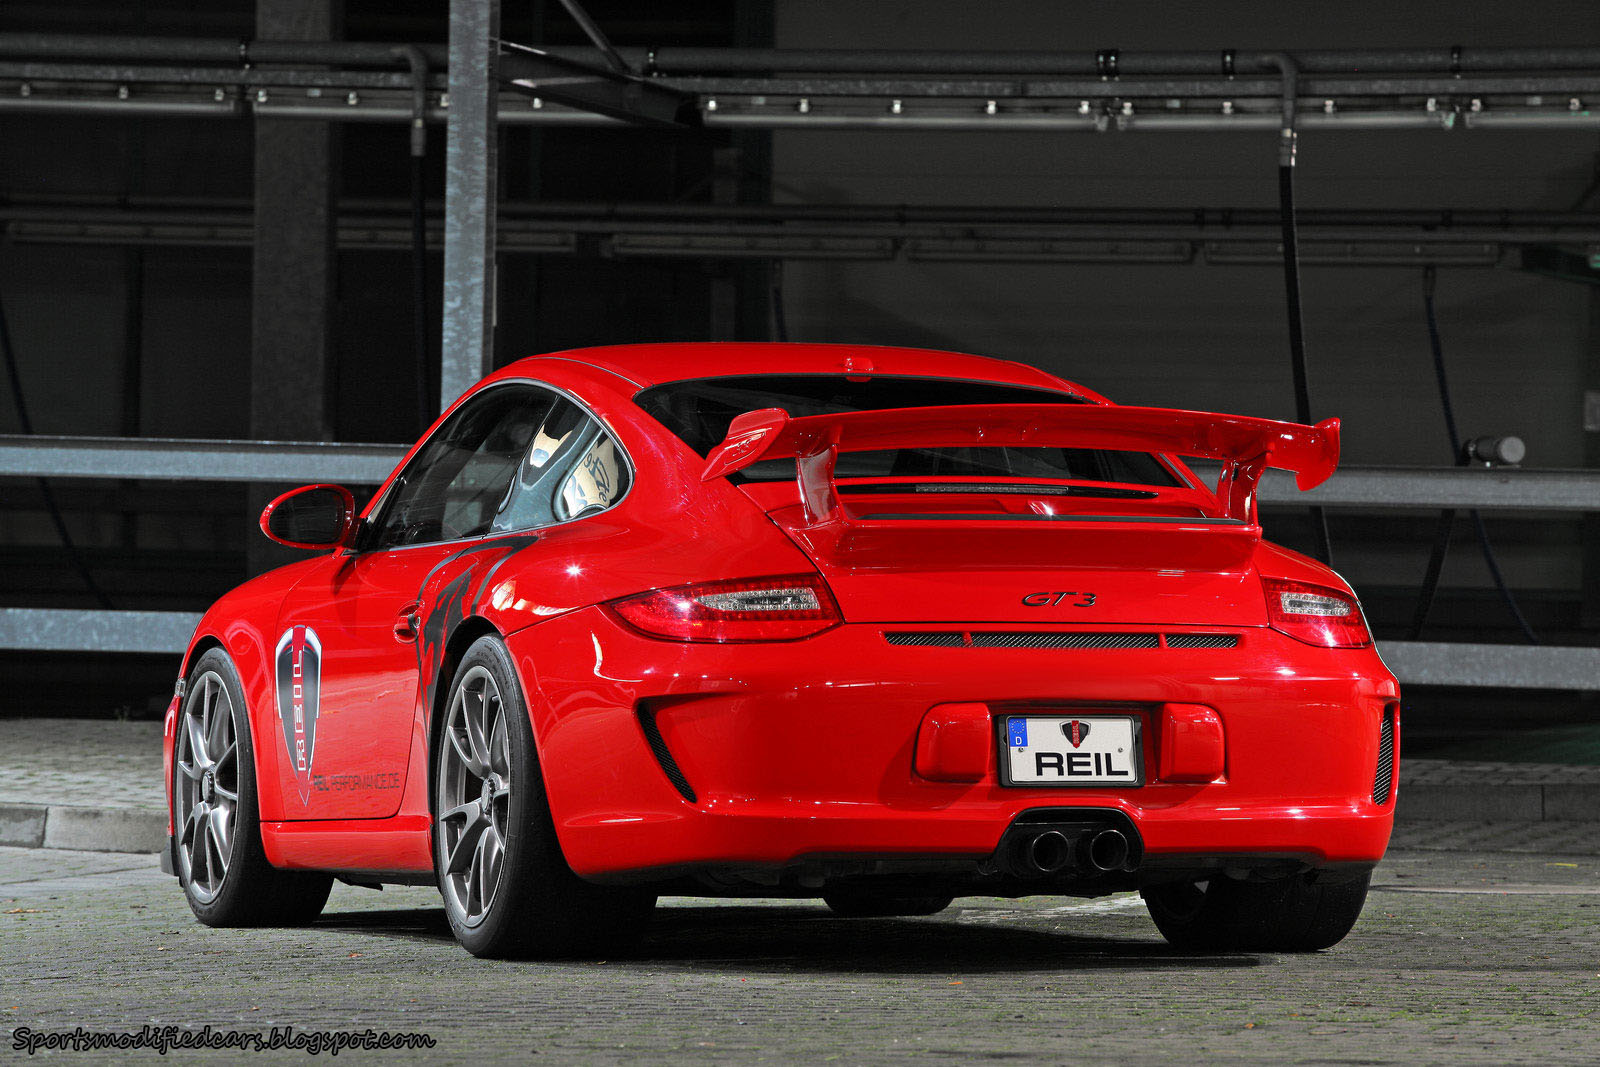 You have read this article porsche sports modified cars with the title 455 horsepower reil performance porsche 911 gt3 you can bookmark this page url